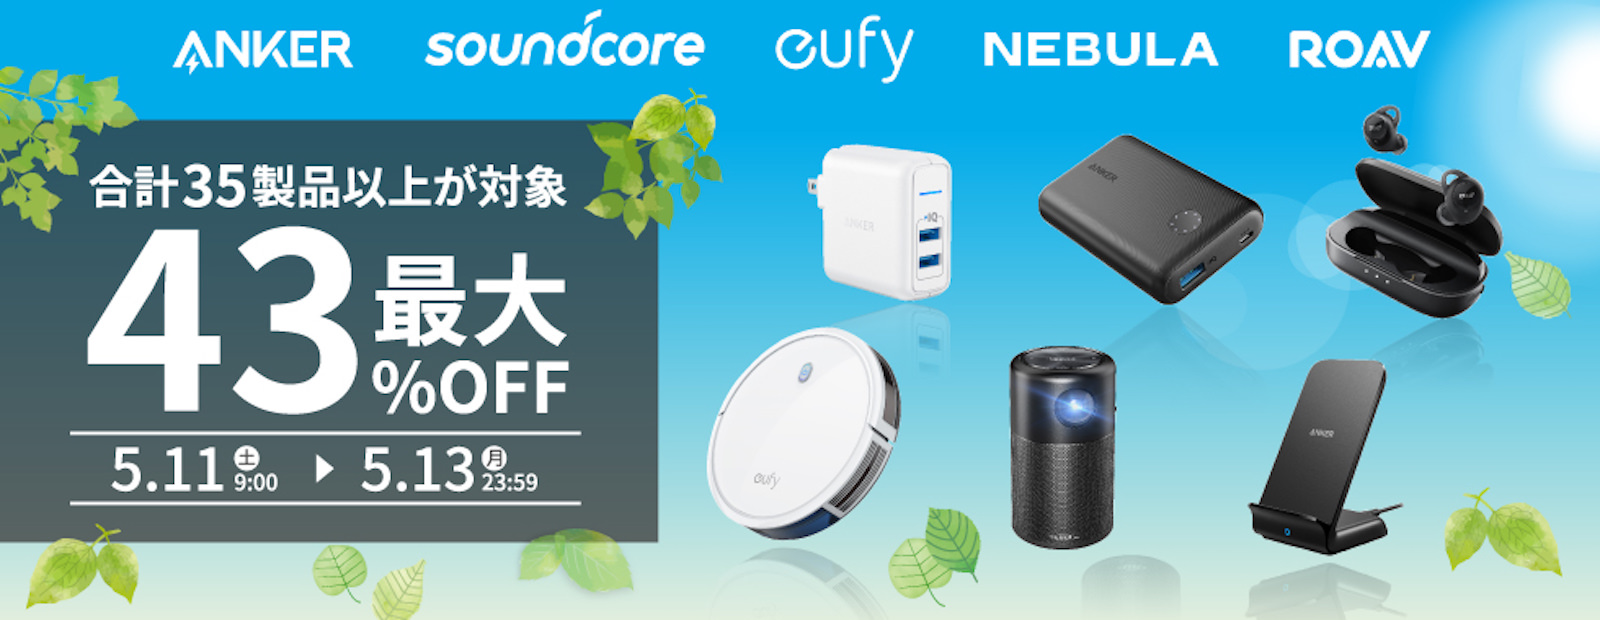 Anker TimeSale May 11 Banner